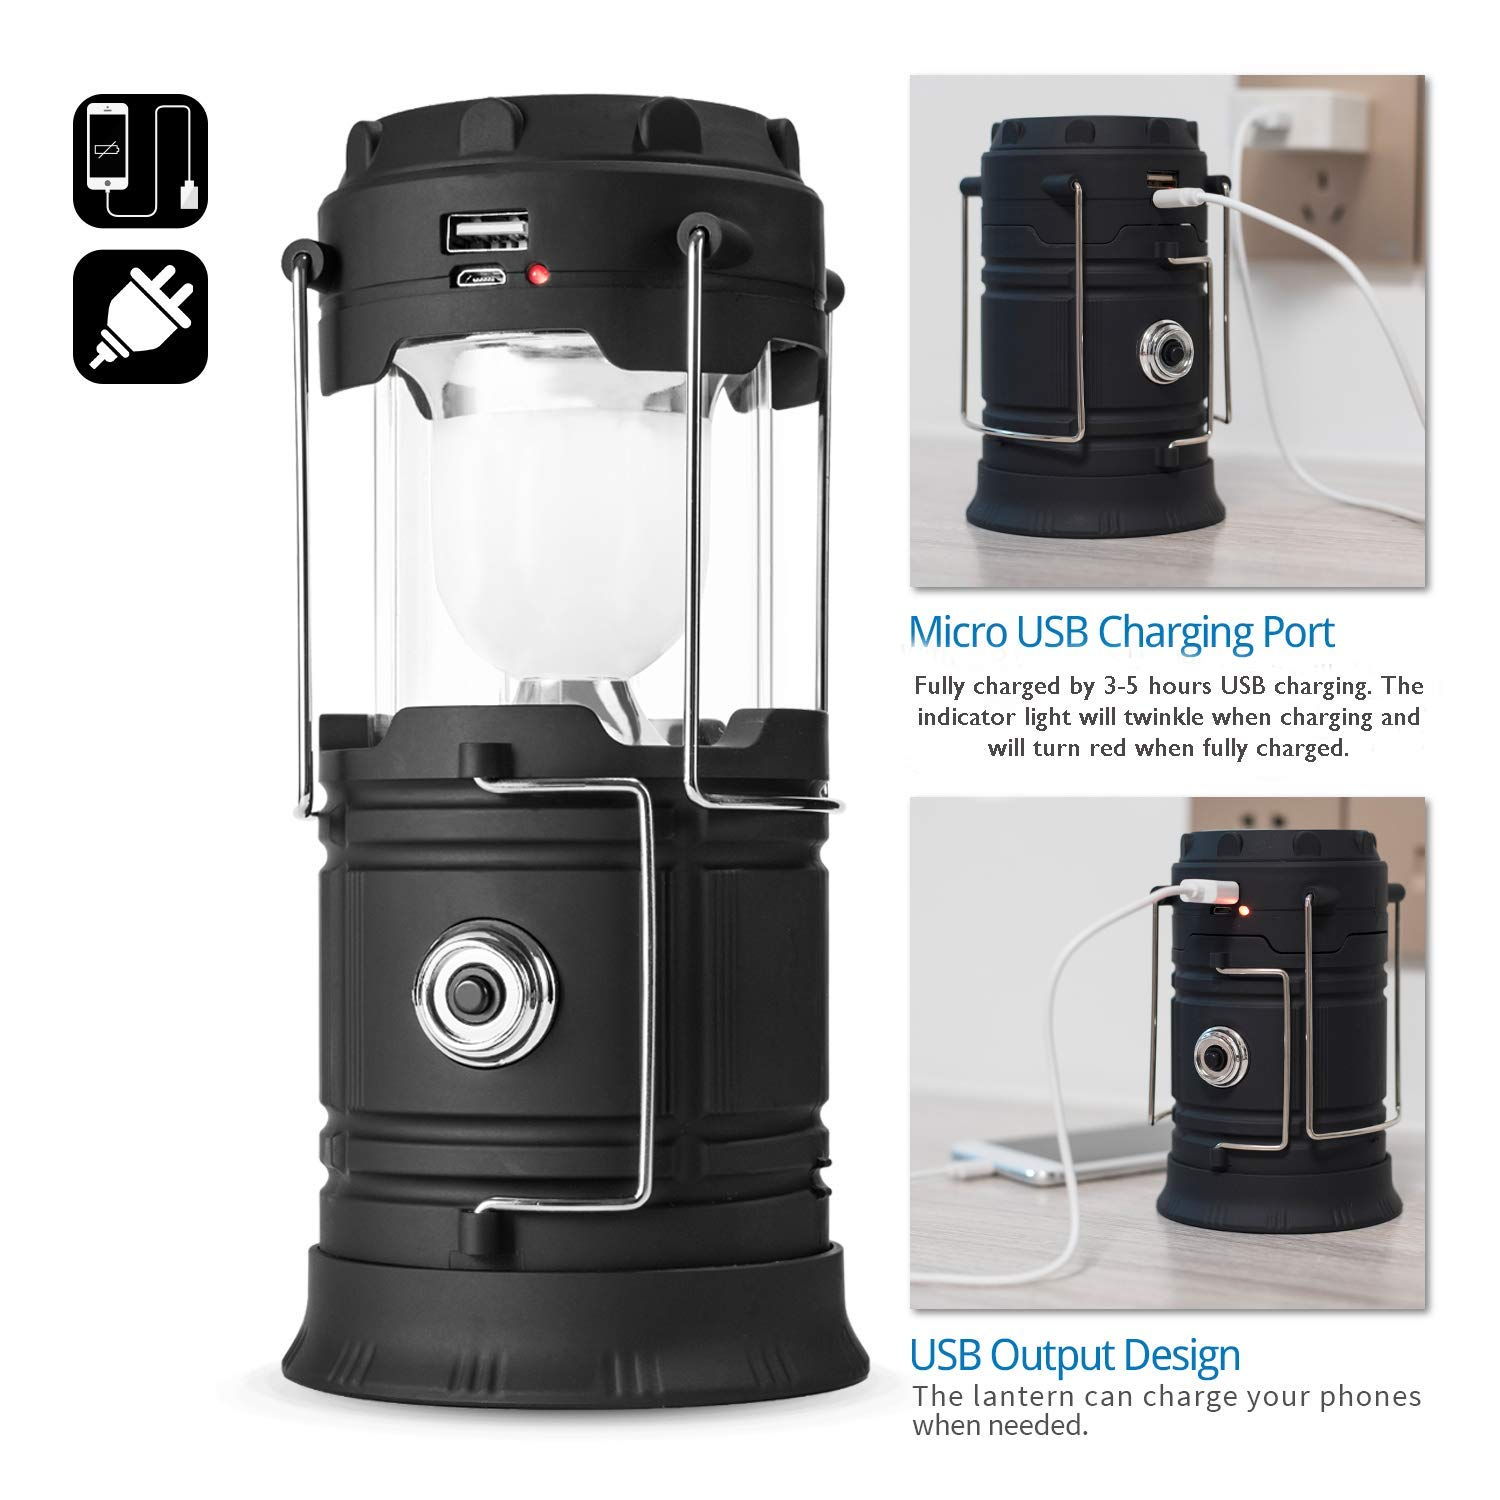 Storm Hurricanes Black 2 Collapsible /& Portable for Emergency Solar Lantern Flashlights USB Rechargeable Camping Lantern Led Power Outage